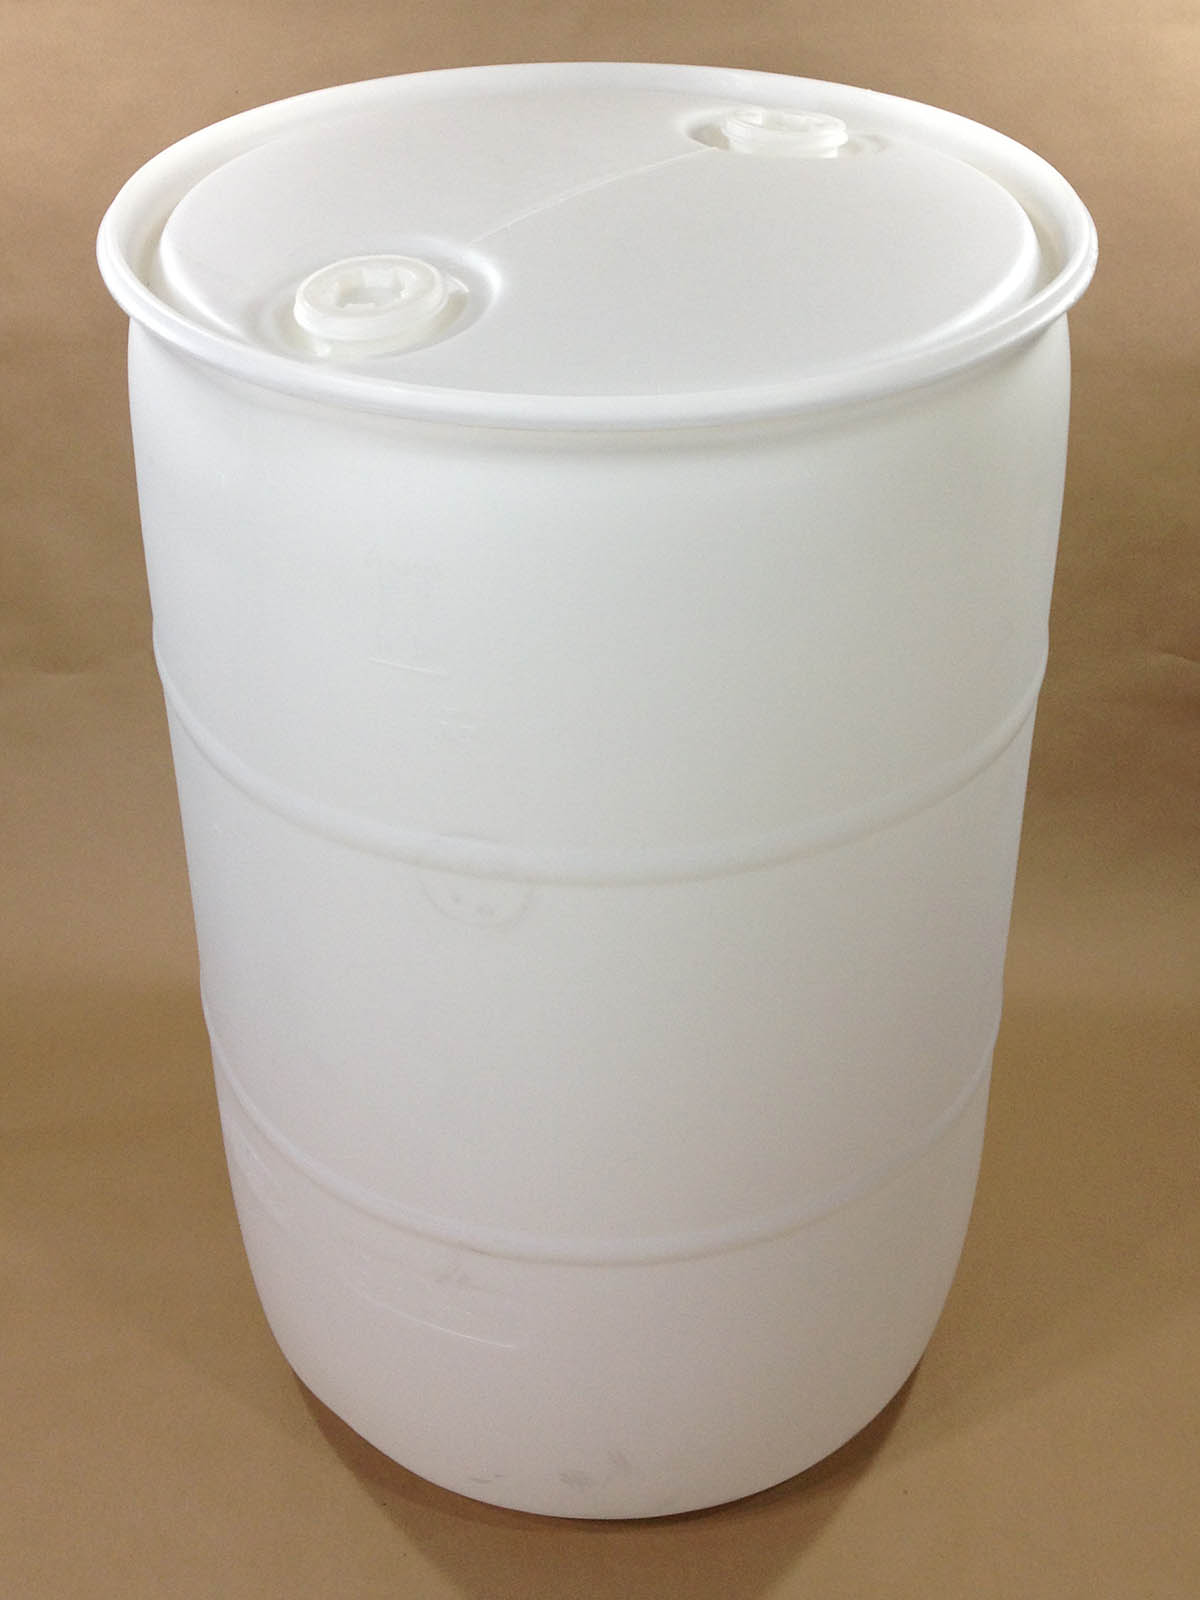 55 Gallon Natural Plastic Drum SPP055CN00UL1 Yankee Containers